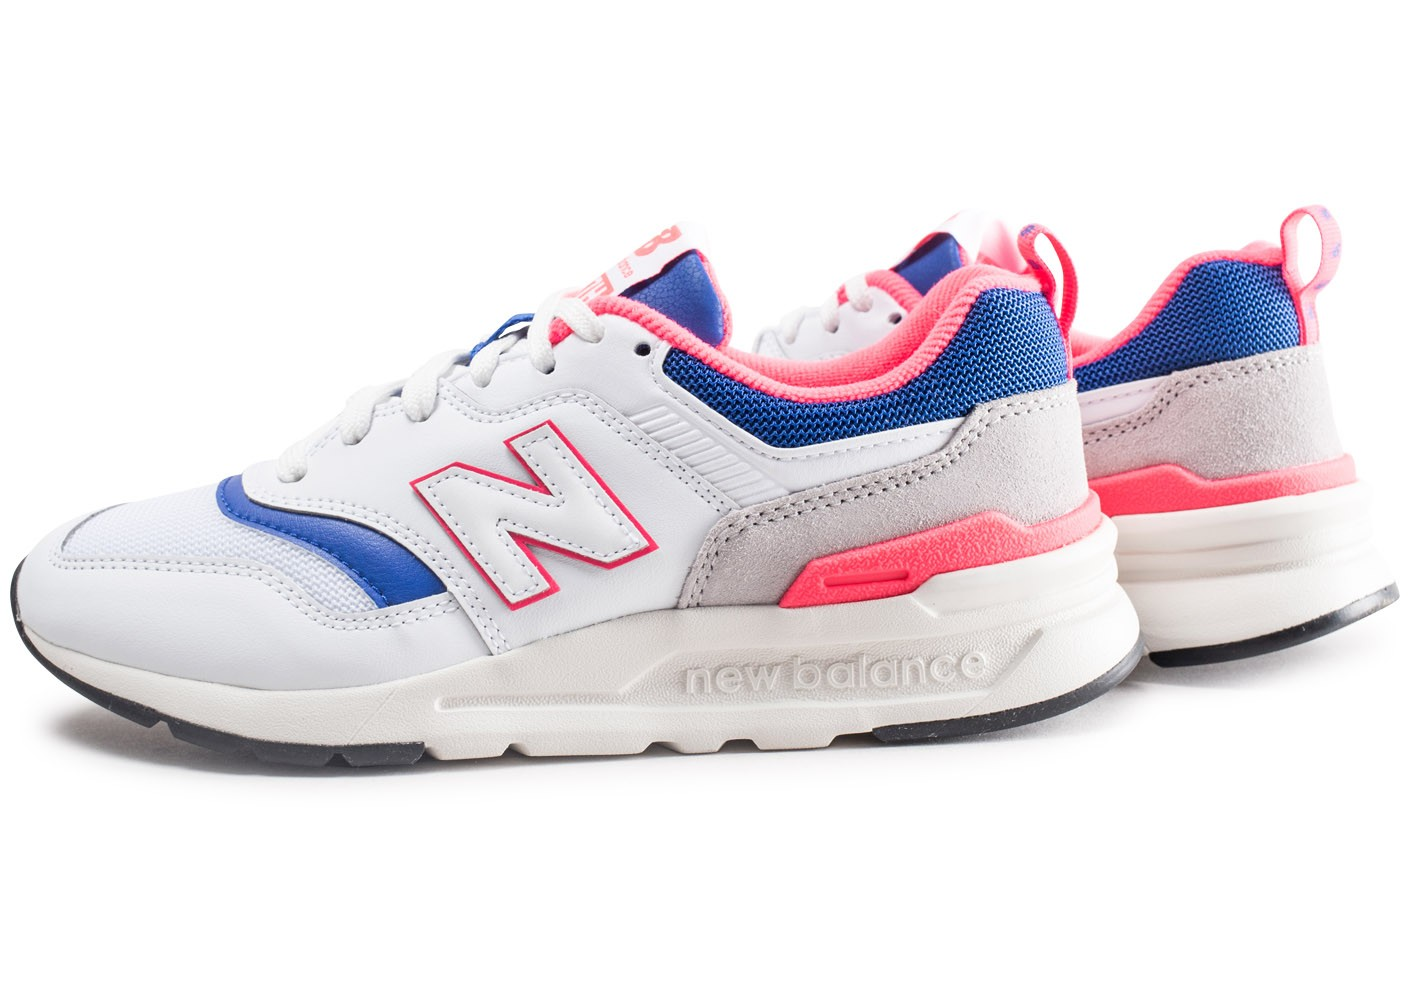 new balance blanc bleu rose